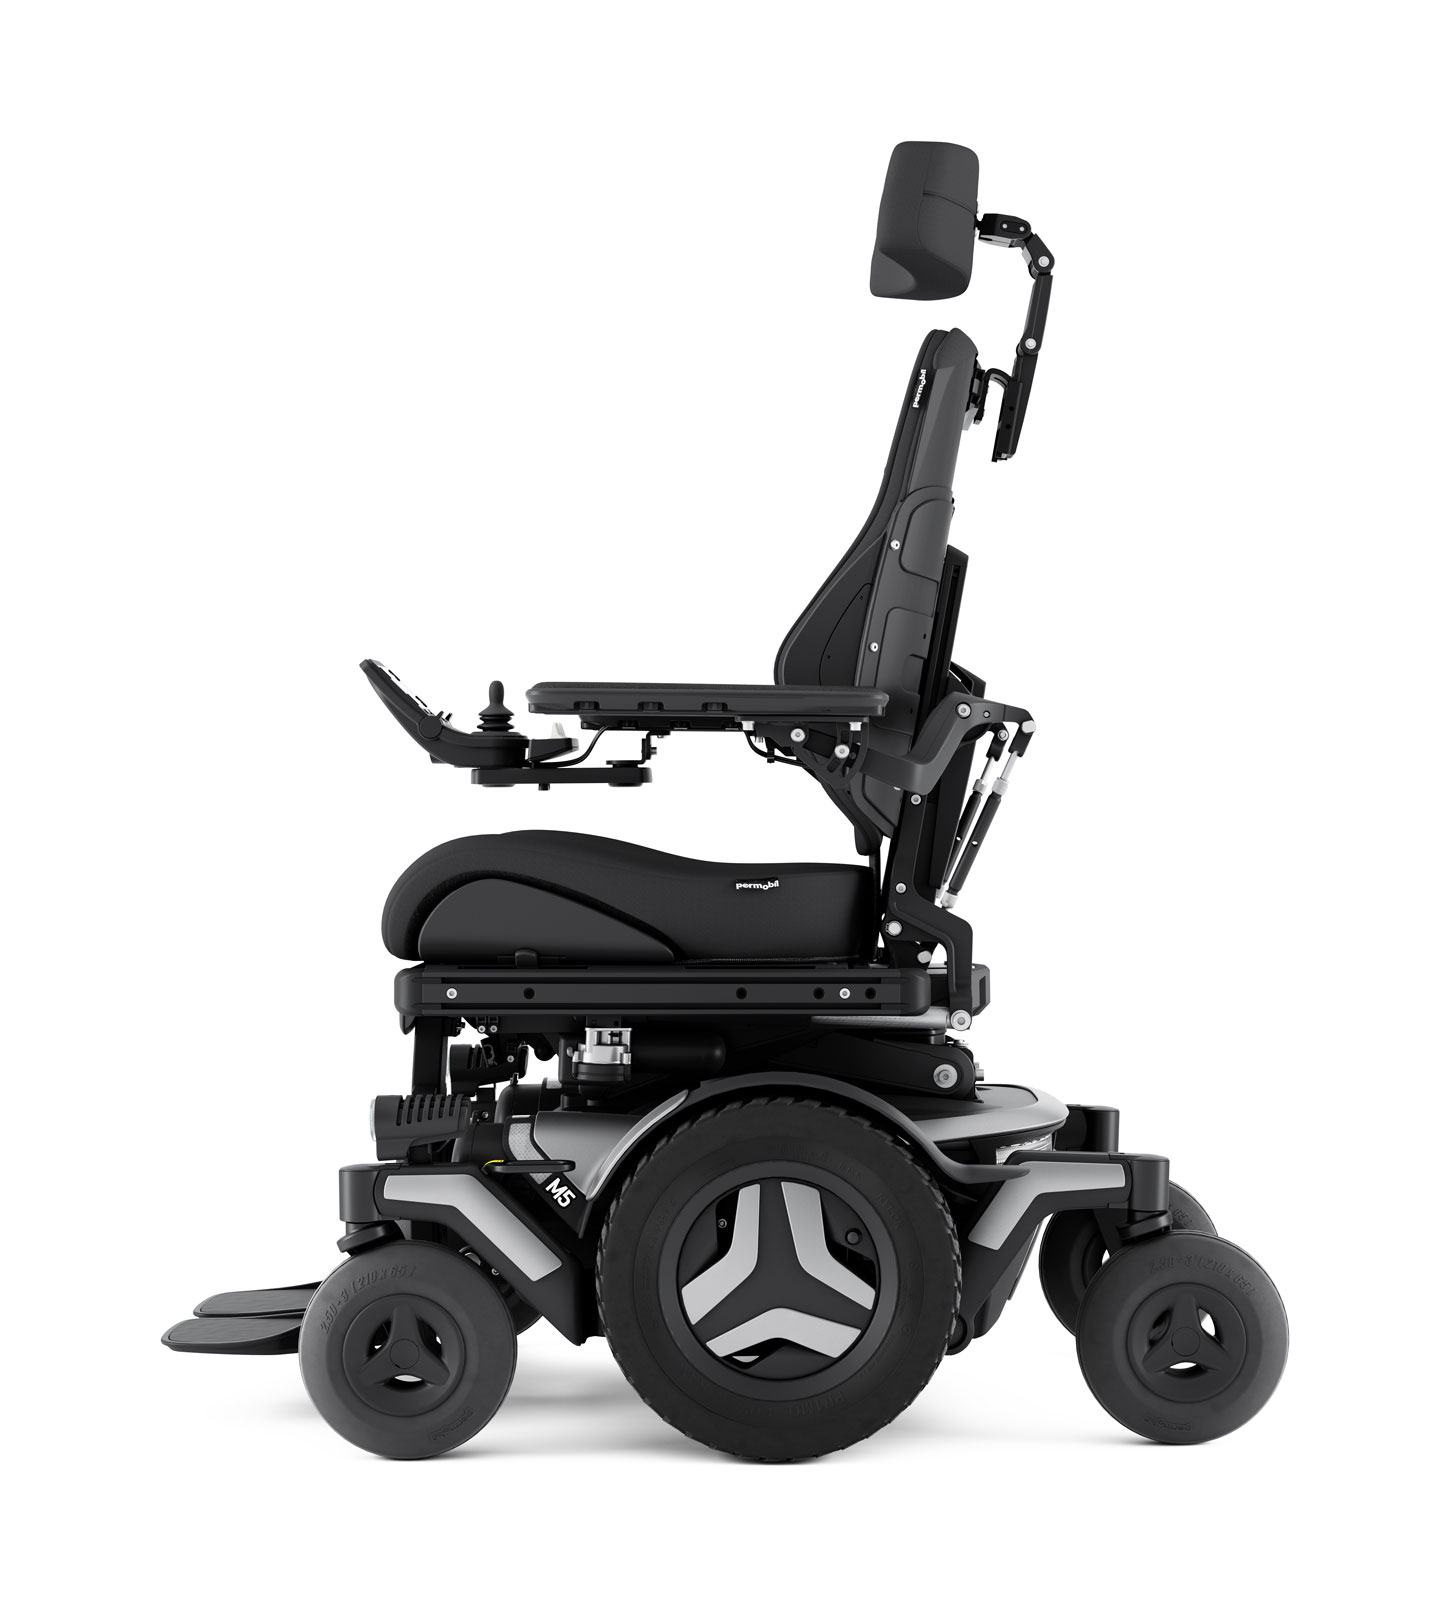 m5 corpus outdoor/indoor powerchair side view